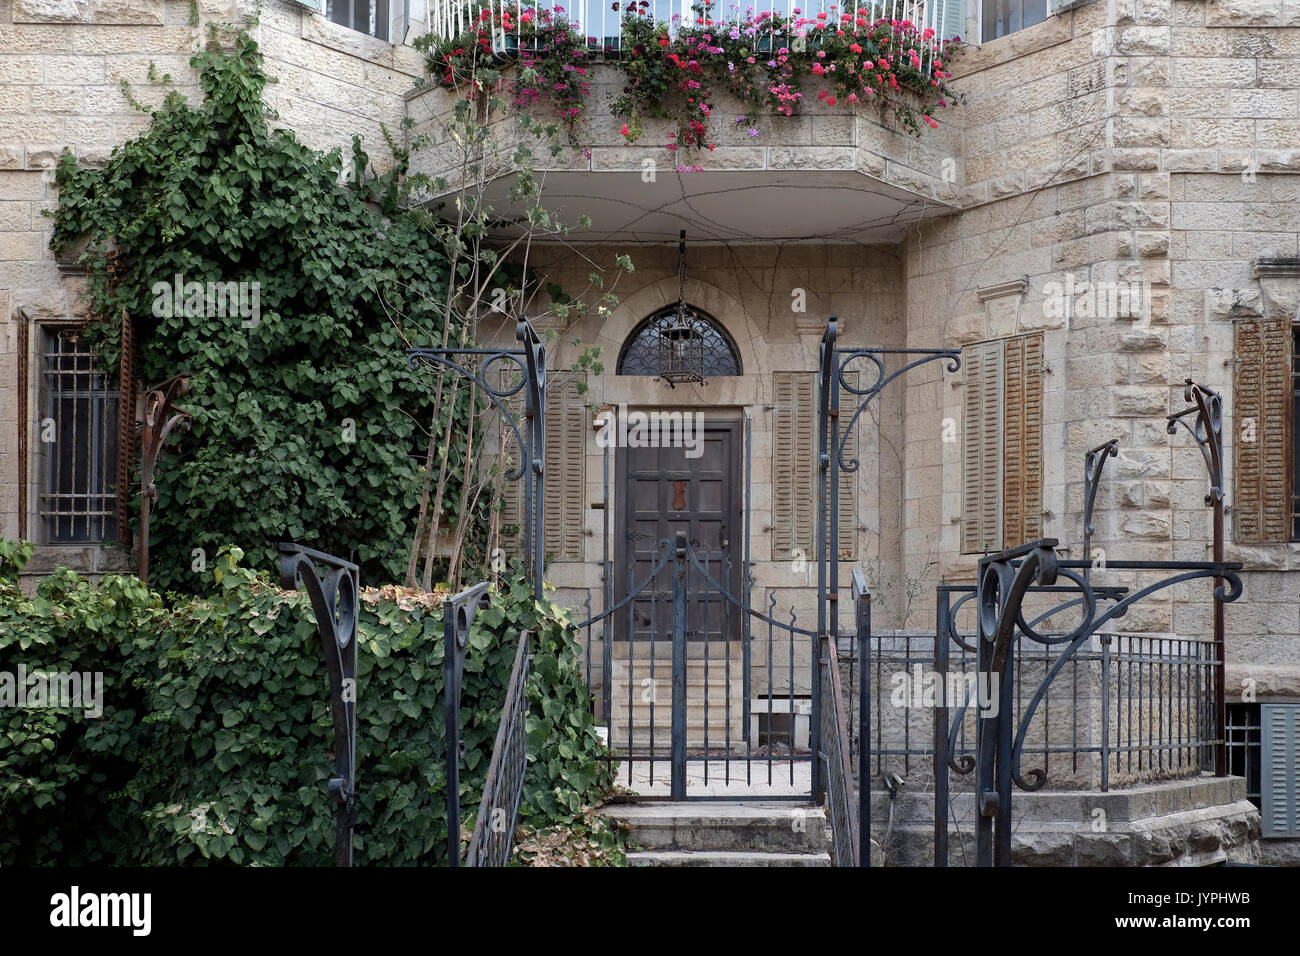 Facade of the former Arab villa of Al-Khalili family located in 45 Rachel Imenu street in Katamon or Qatamon neighborhood established in the early 20th century and was populated by wealthy Christian Arabs who fled during the 1948 Israel War of Independence. West Jerusalem Israel - Stock Image